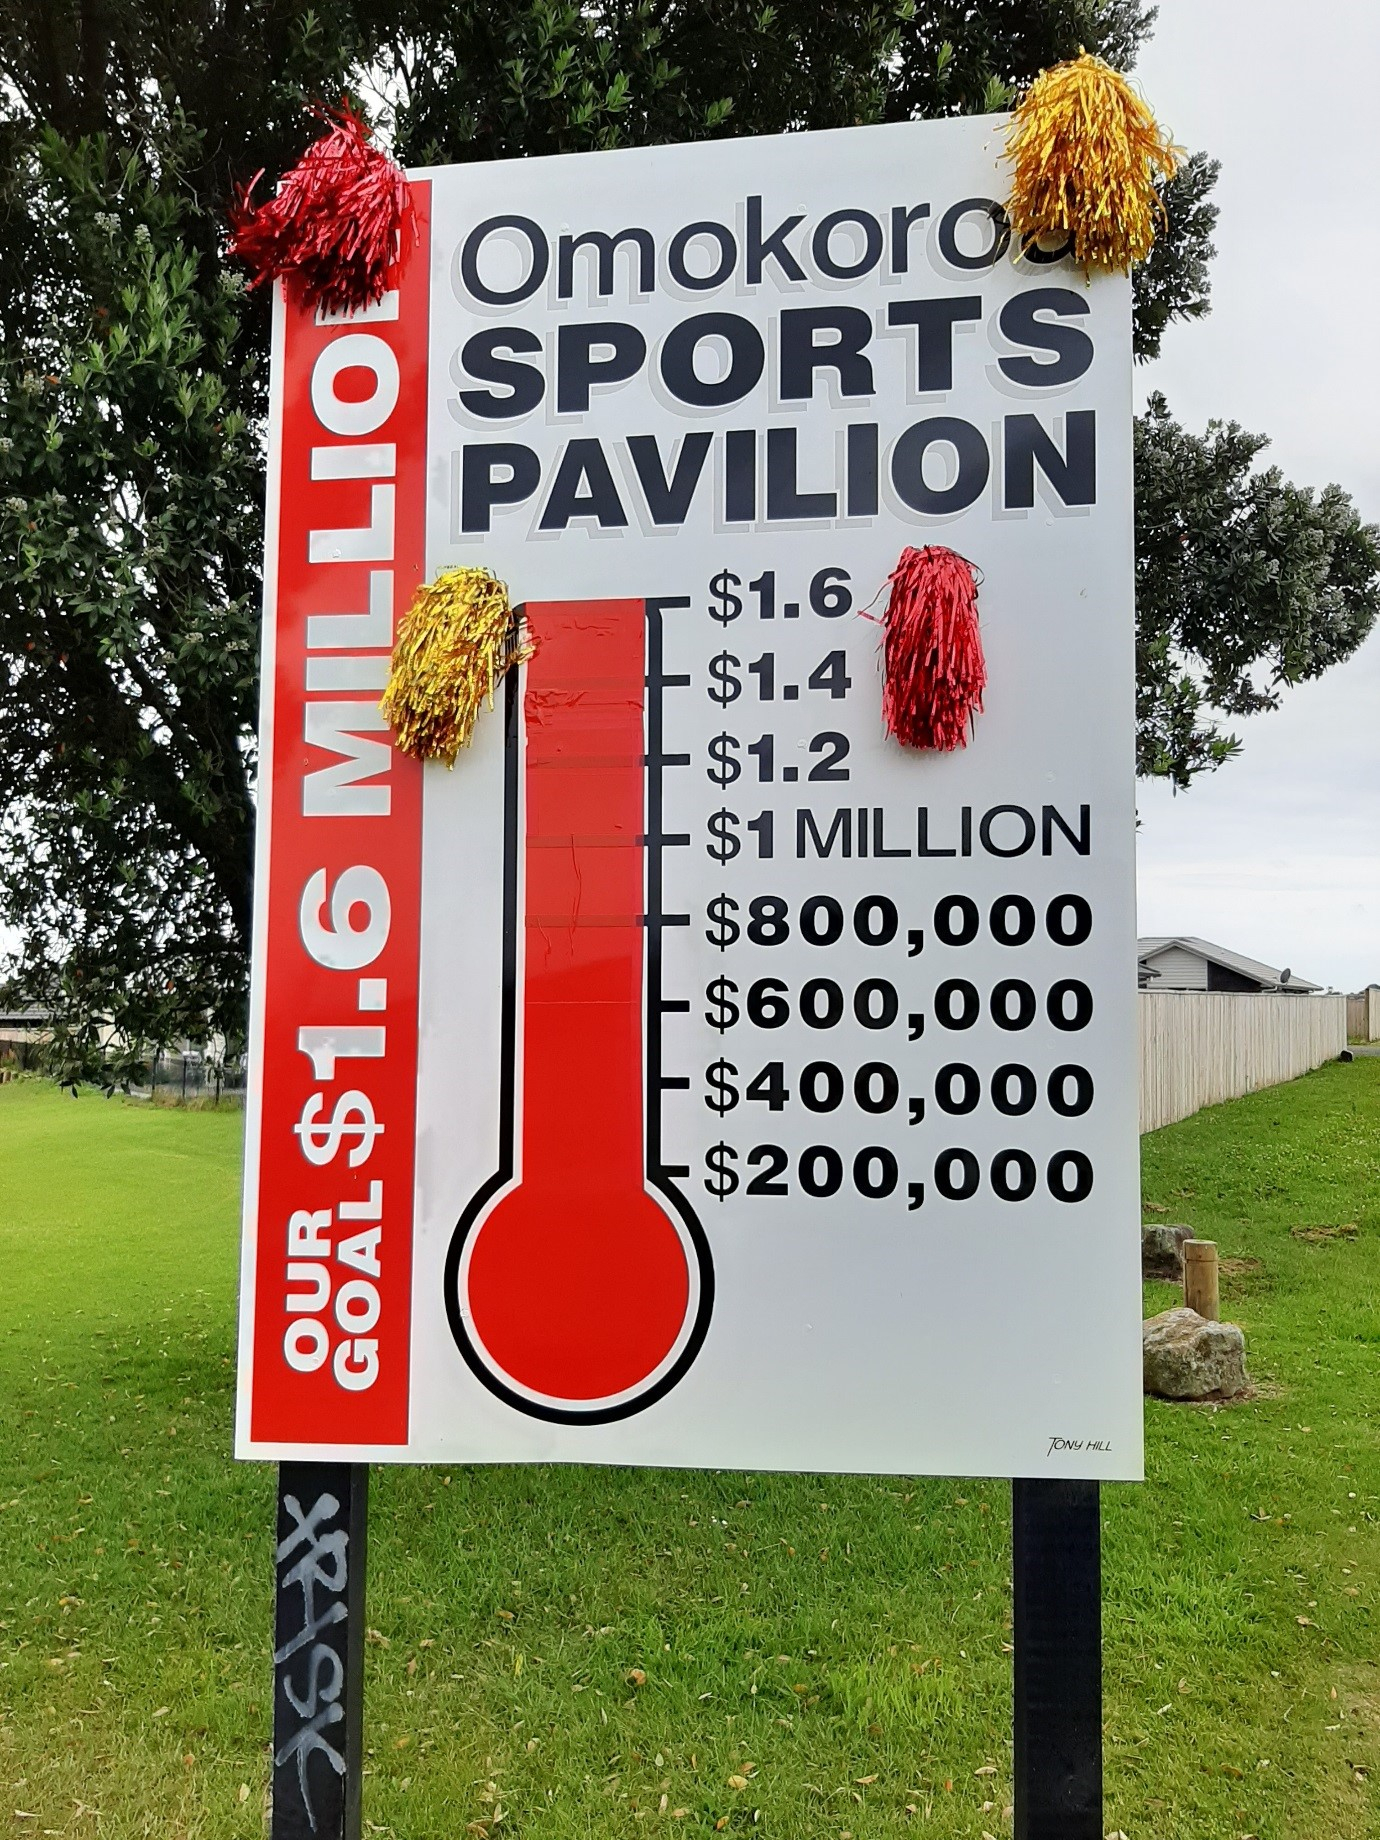 New Omokoroa Sports Pavilion Will Improve Locals Lifestyle